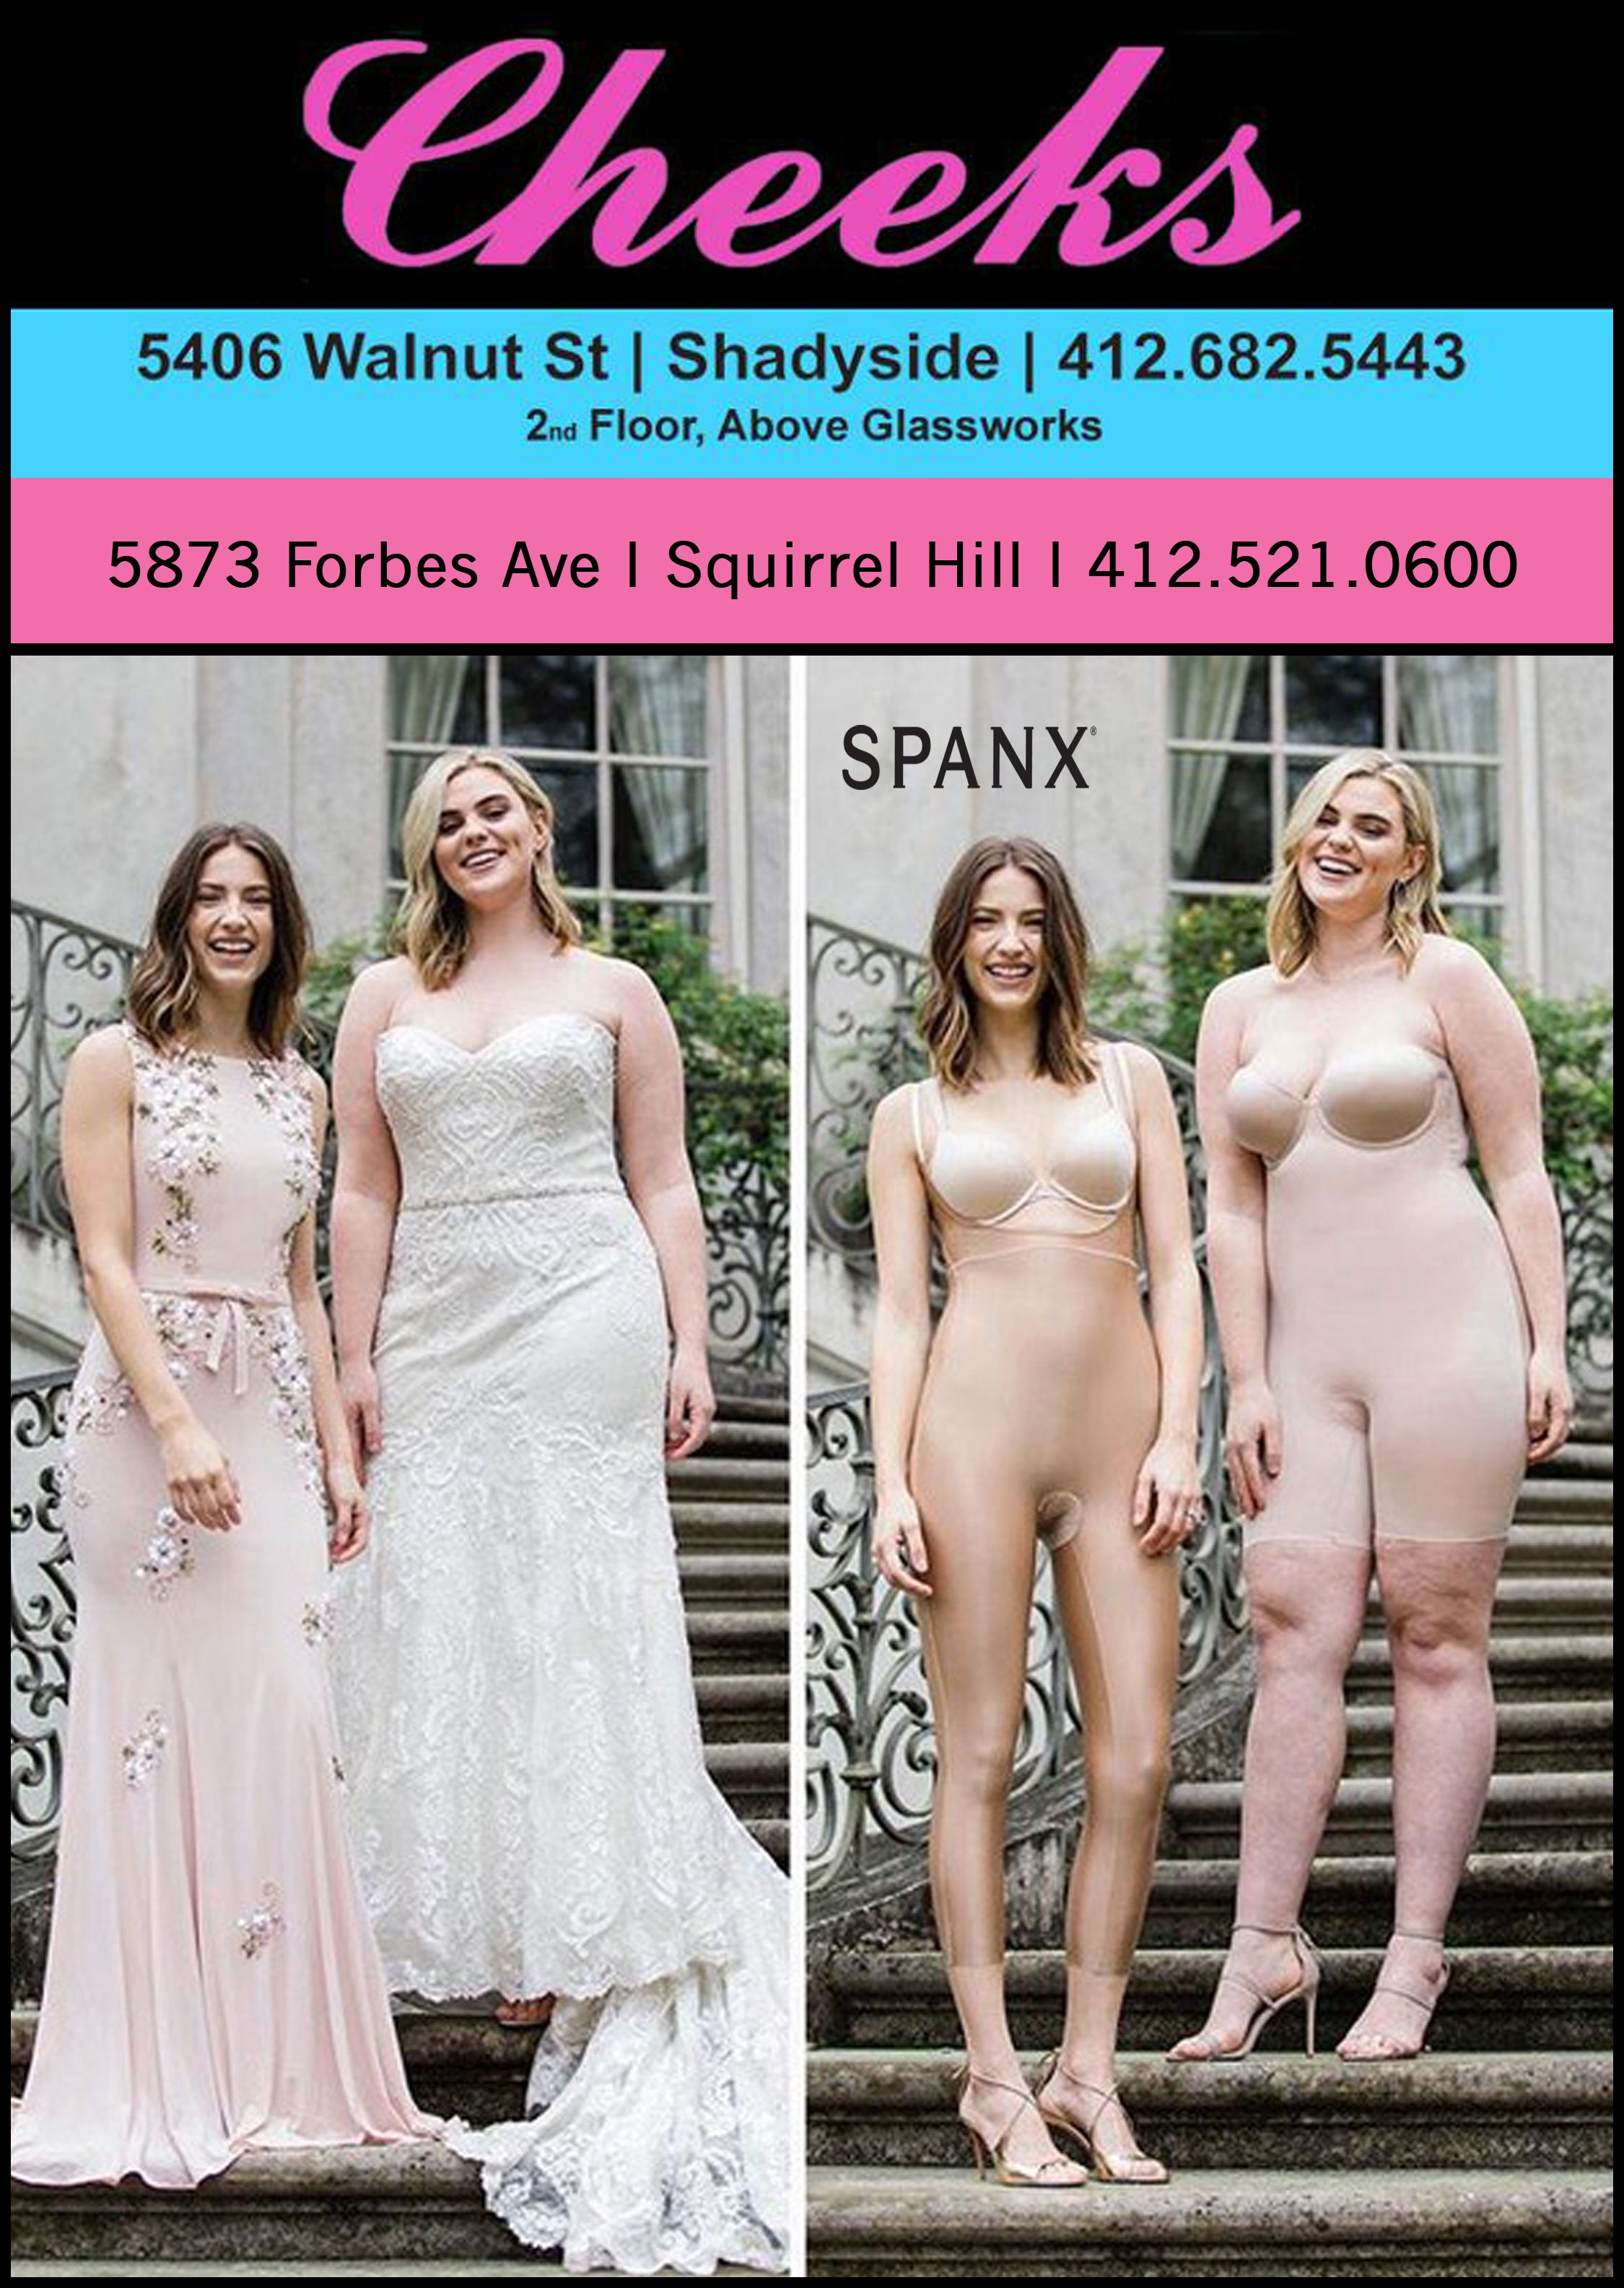 9abce1b7aa630 Spanx Galore At Cheeks! Getting ready for a wedding the last thing you need  to worry about is your underwear! Cheeks carries several different Spanx  styles ...